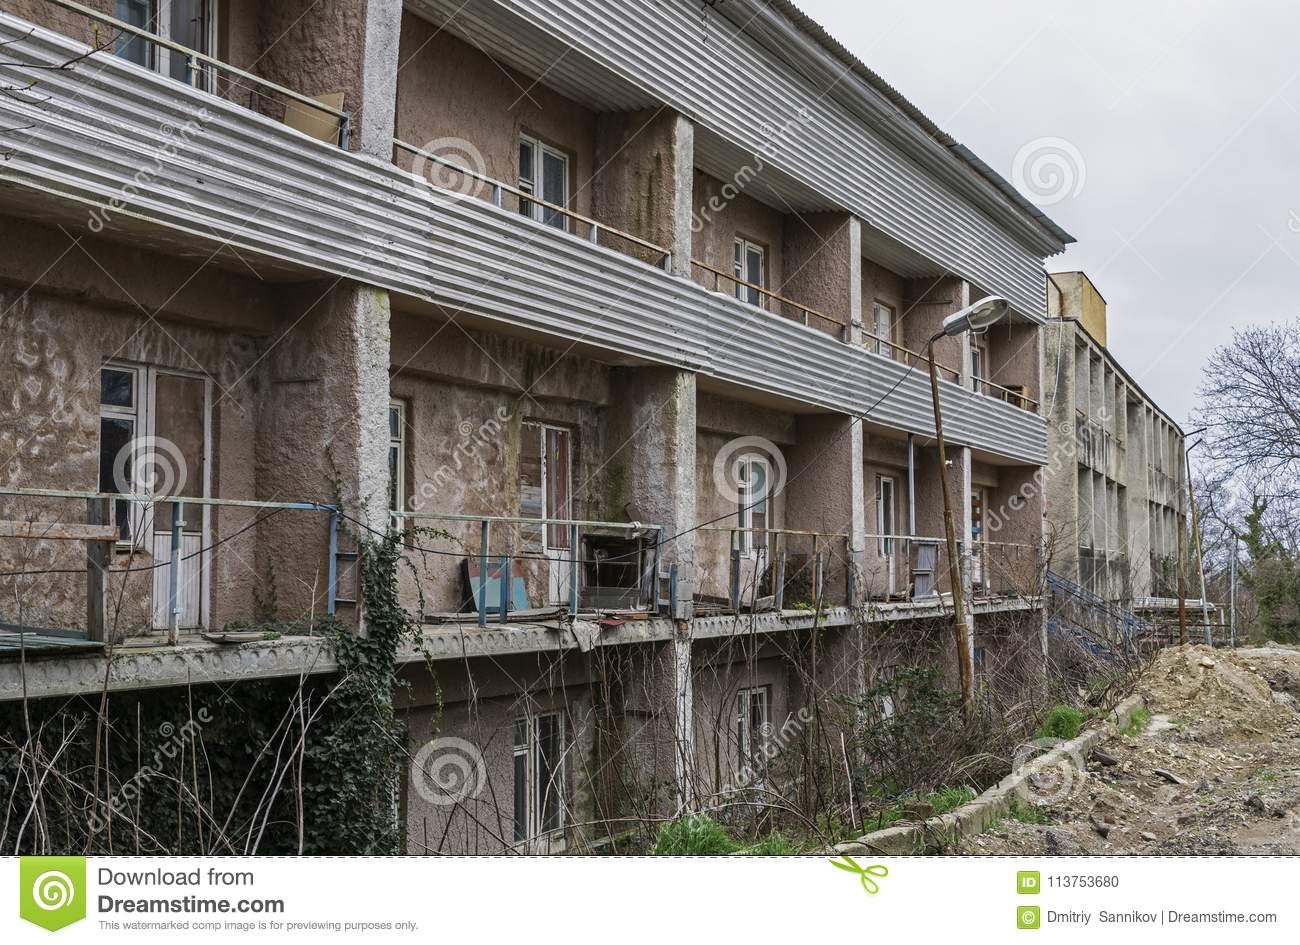 The abandoned building